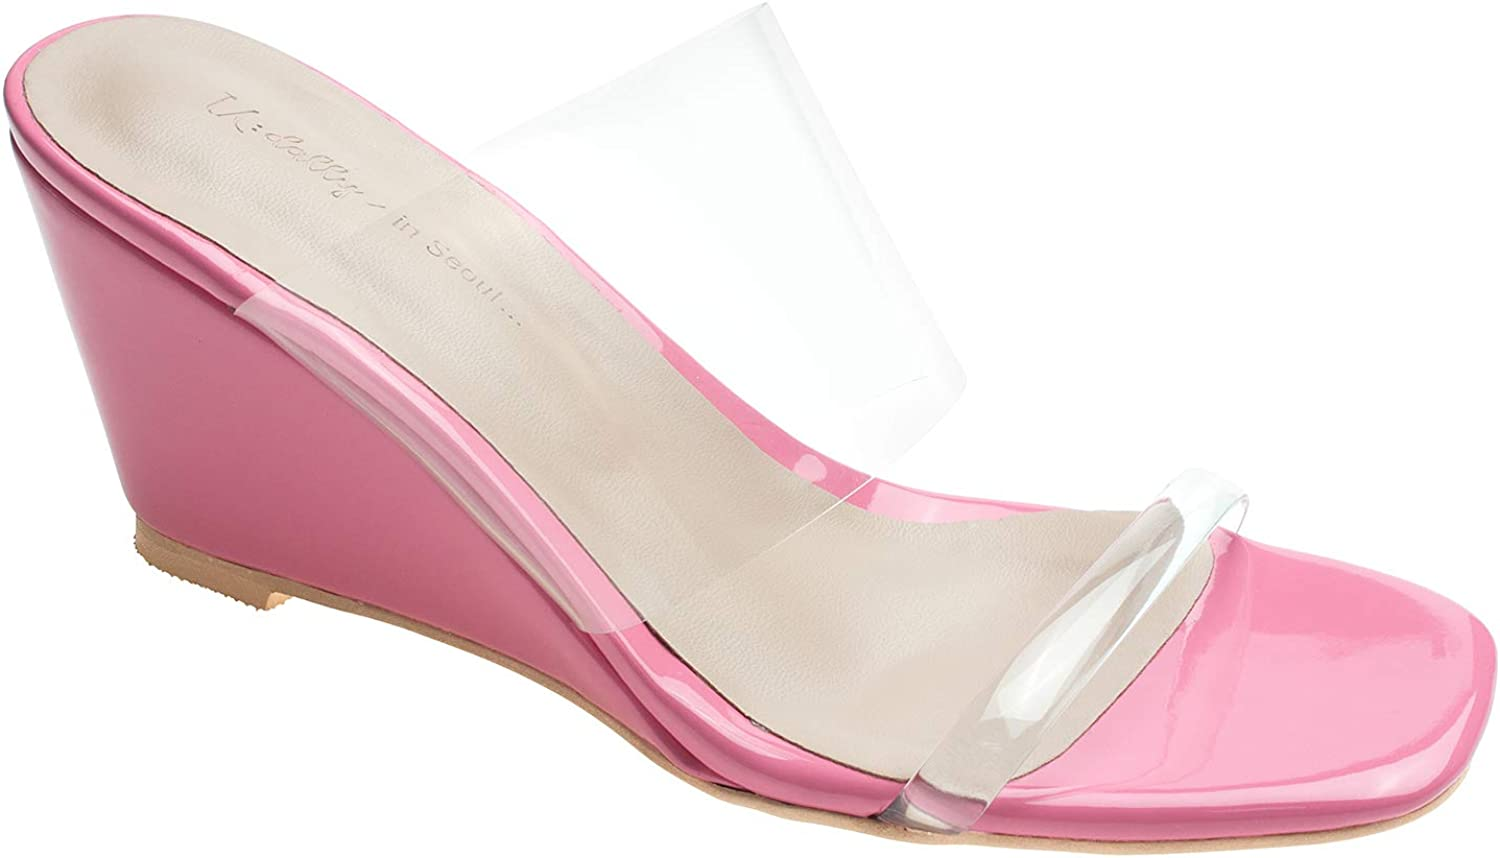 AnnaKastle Womens Transparent Clear Strap Wedge Heel Mule Sandals